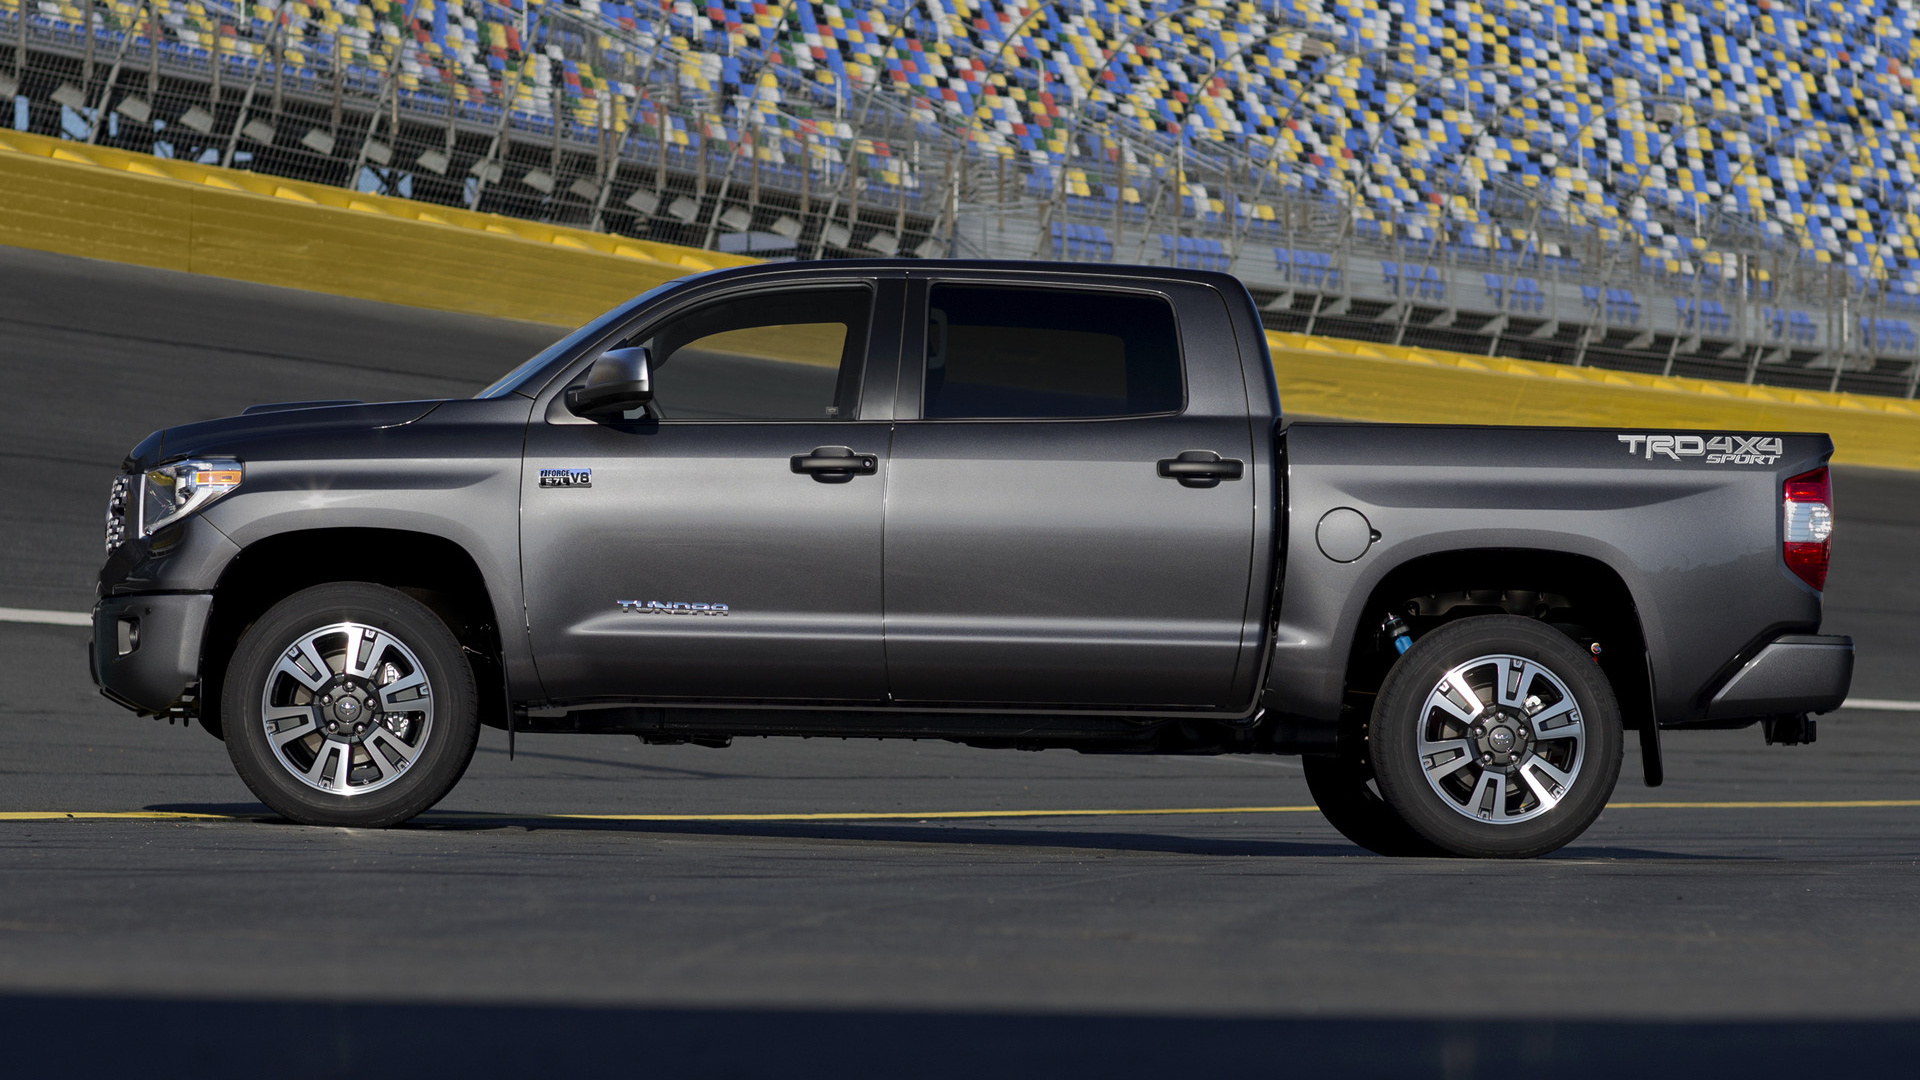 Toyota Tundra Double Cab >> 2018 Toyota Tundra TRD Sport CrewMax - Wallpapers and HD ...